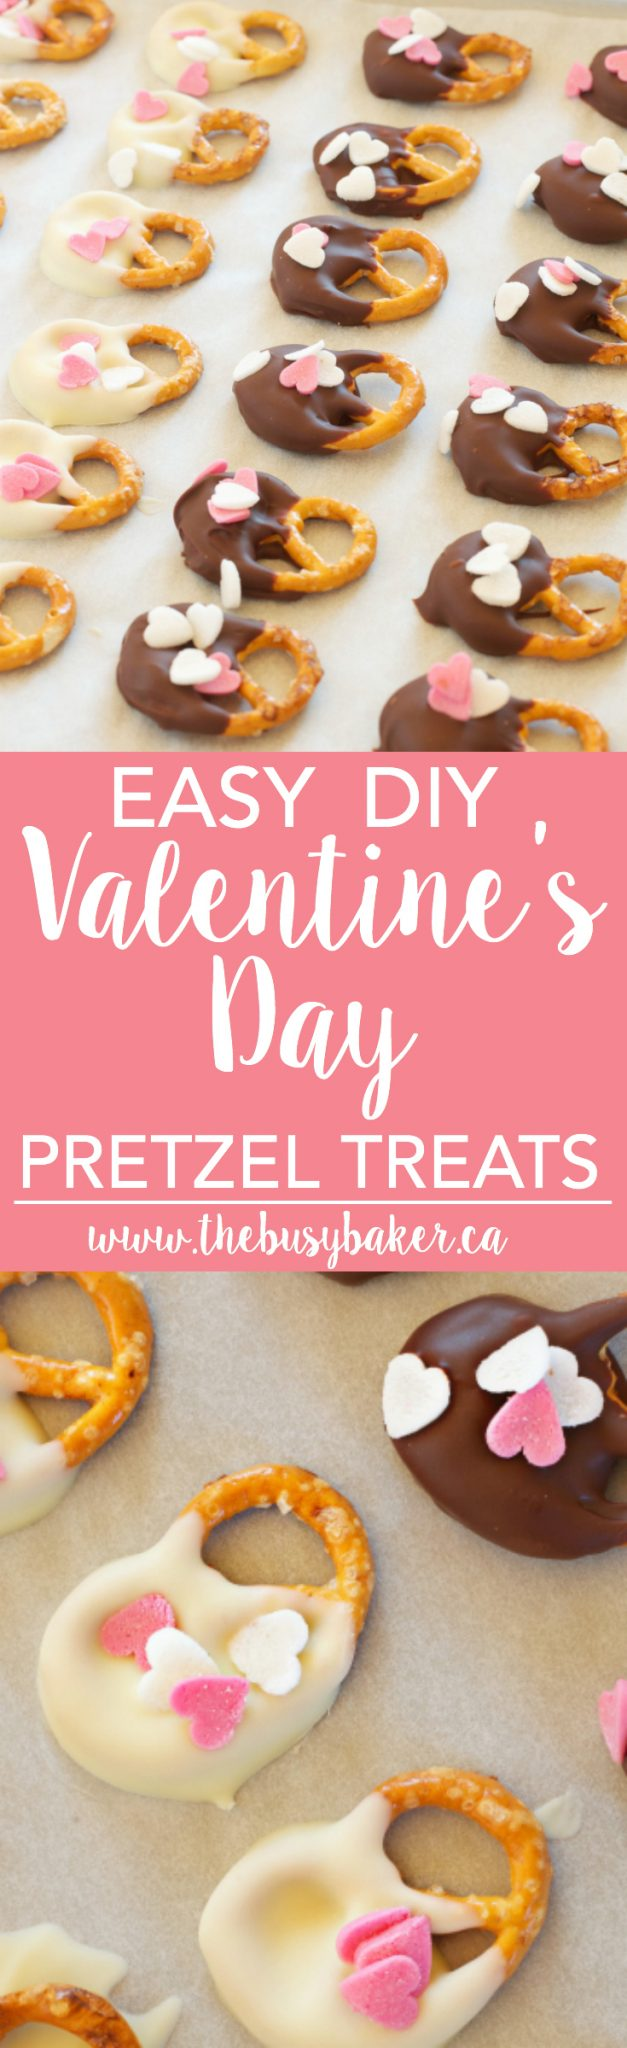 These Easy DIY Valentine's Day Pretzel Treats are the perfect easy homemade treats for Valentine's Day! Recipe from thebusybaker.ca! via @busybakerblog